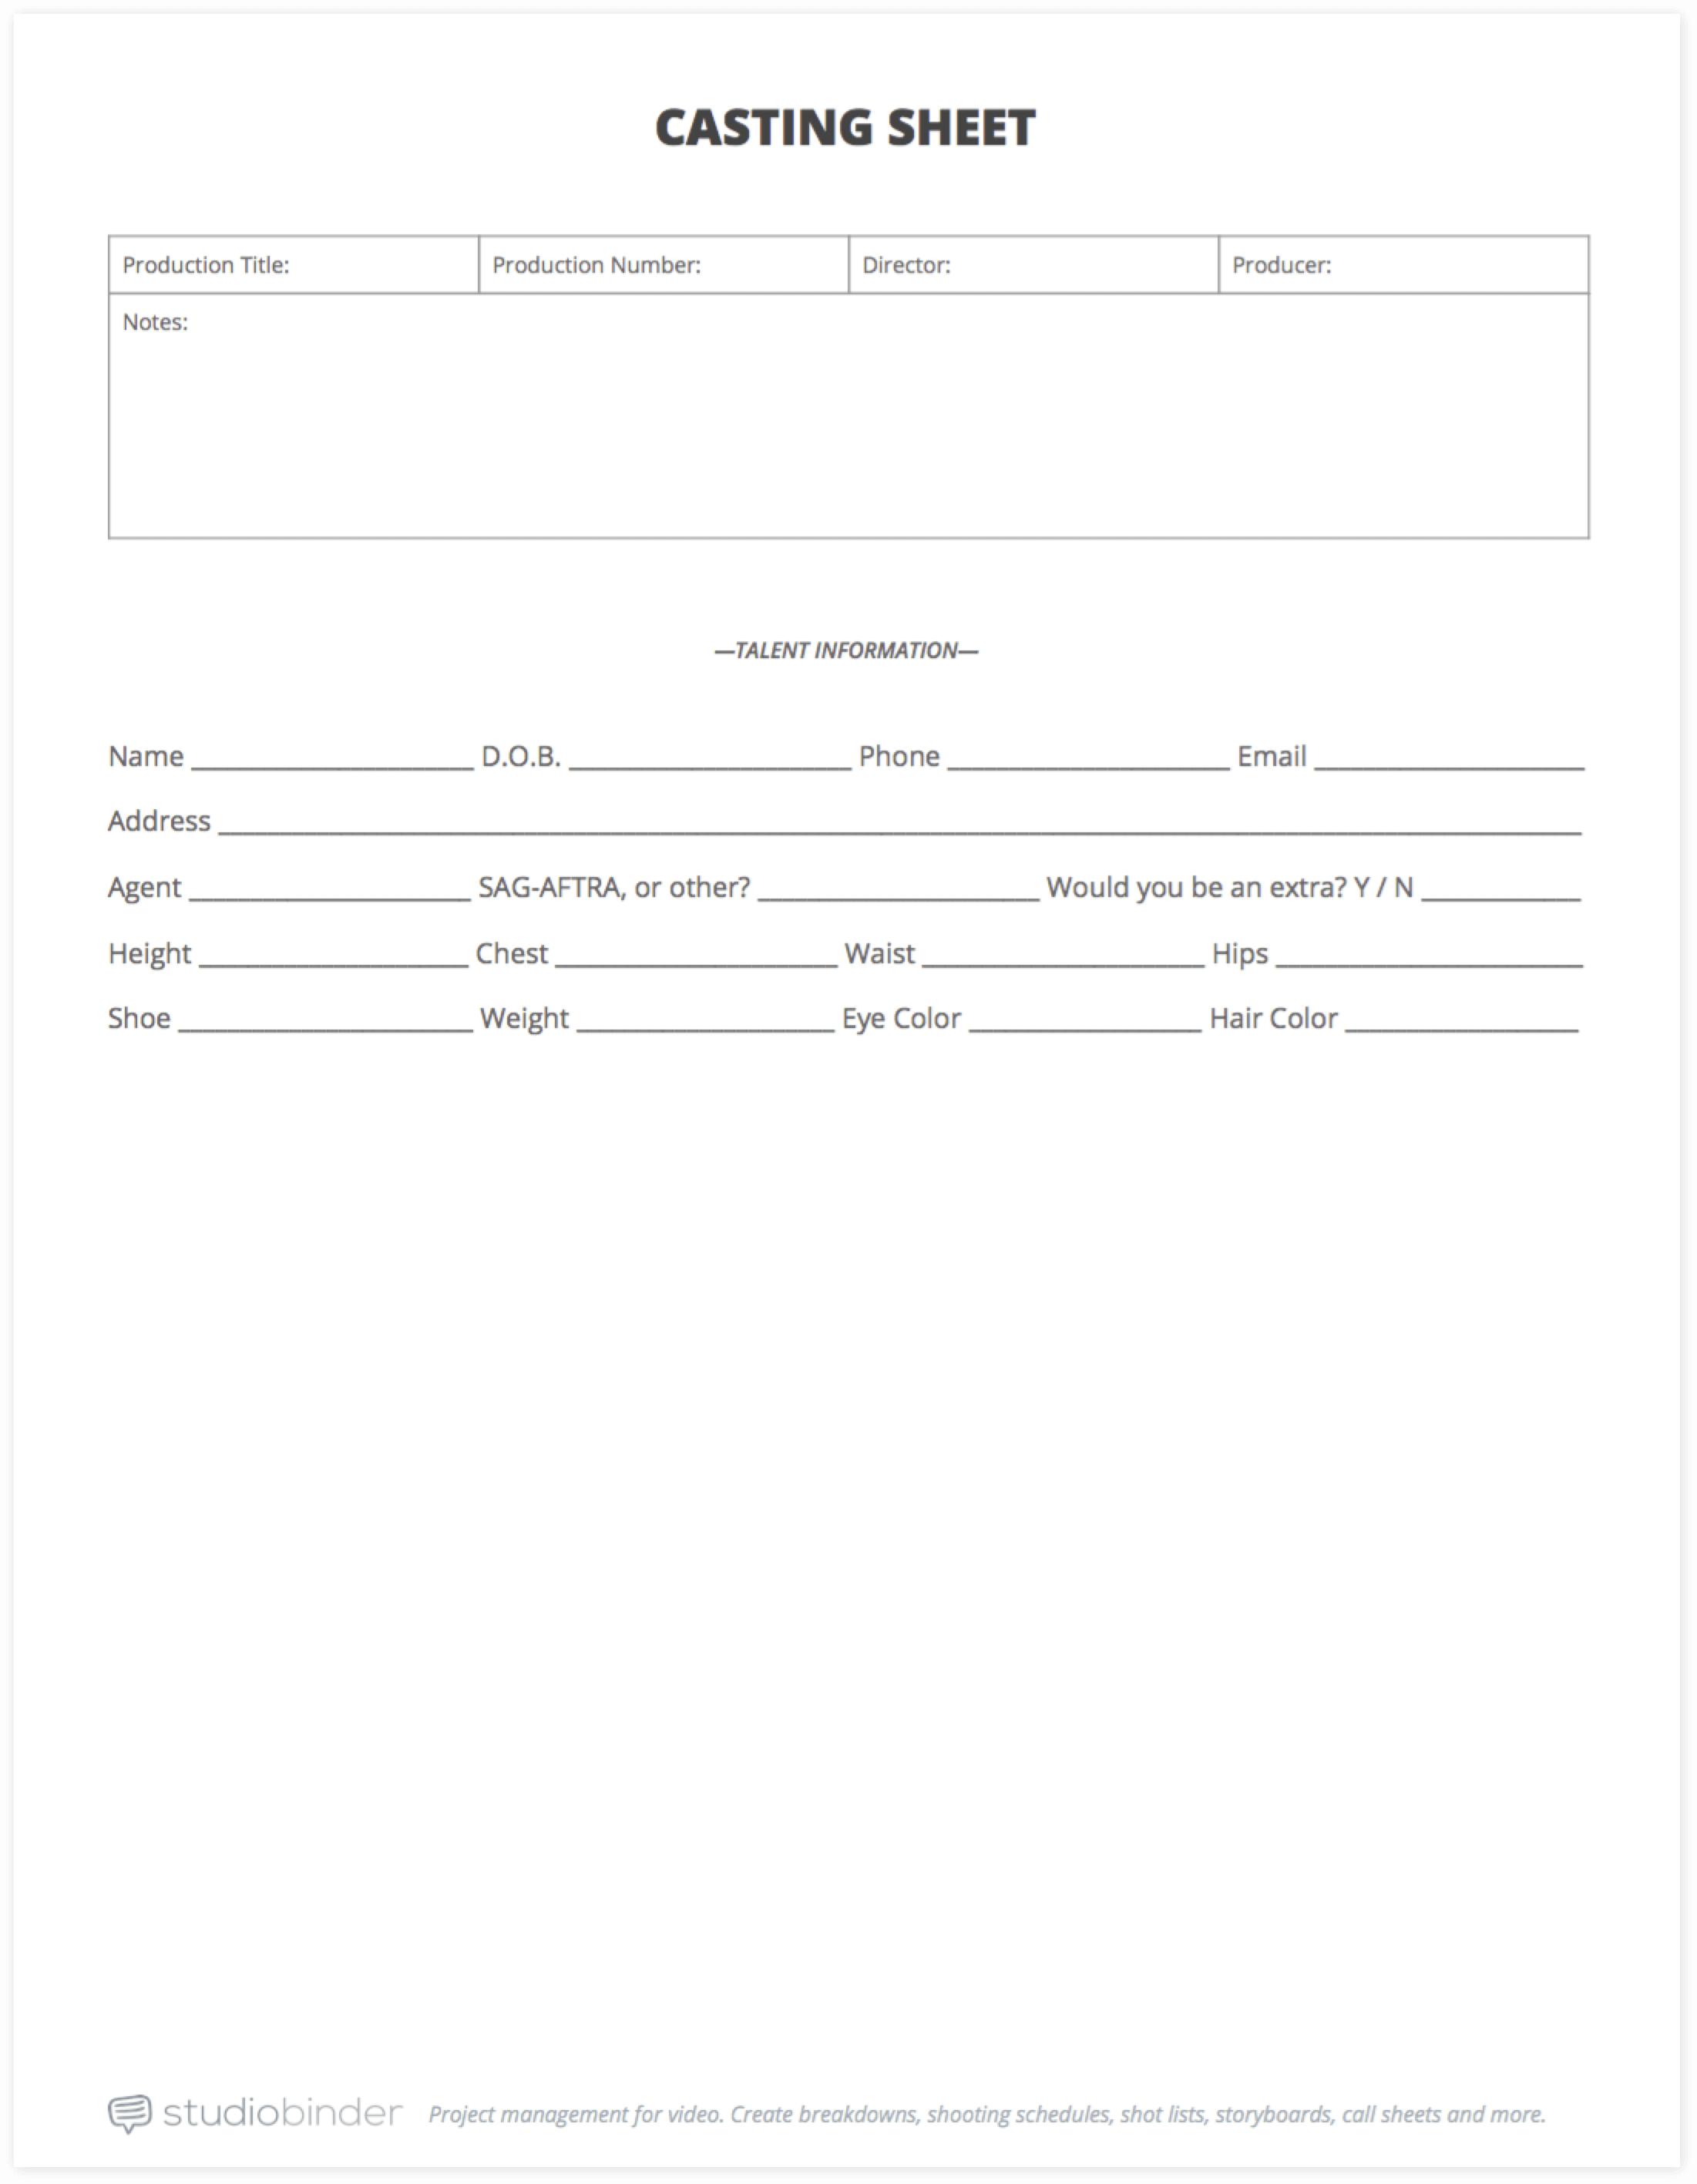 Your Free Casting Sheet Template